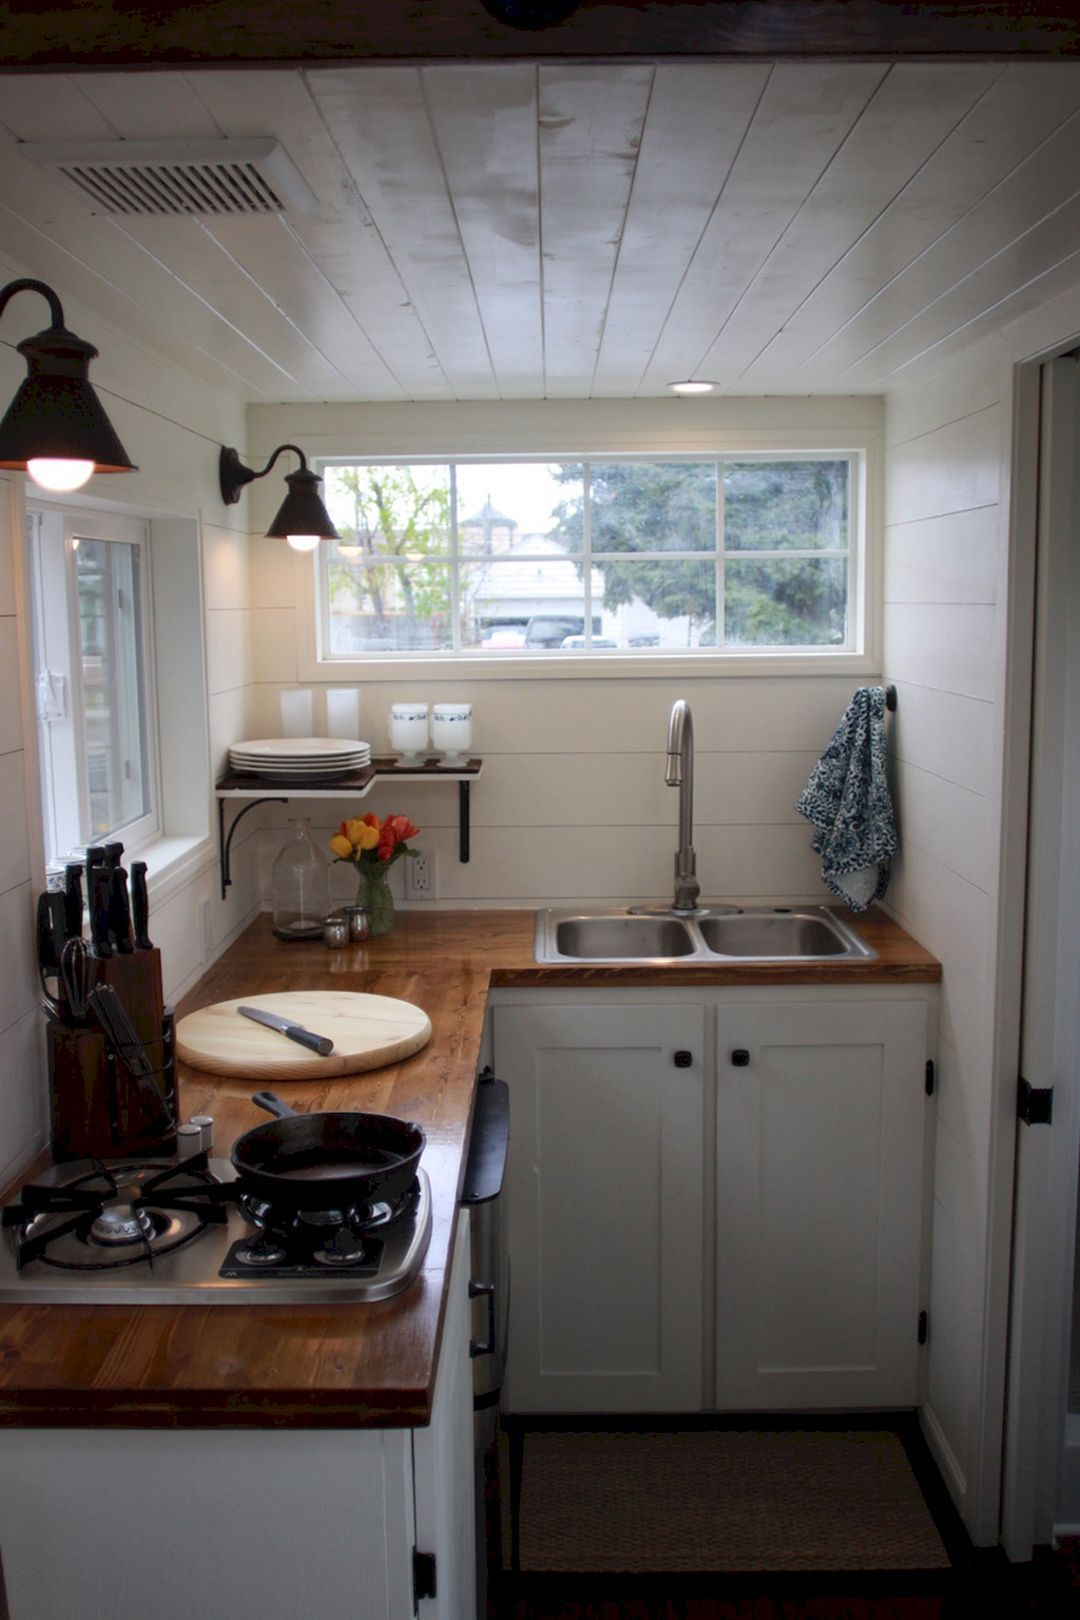 Awesome Tiny Kitchen Design For Your Beautiful Tiny House 65 Best Design Ideas Goodsgn Tiny Kitchen Design Kitchen Remodel Small Tiny House Kitchen